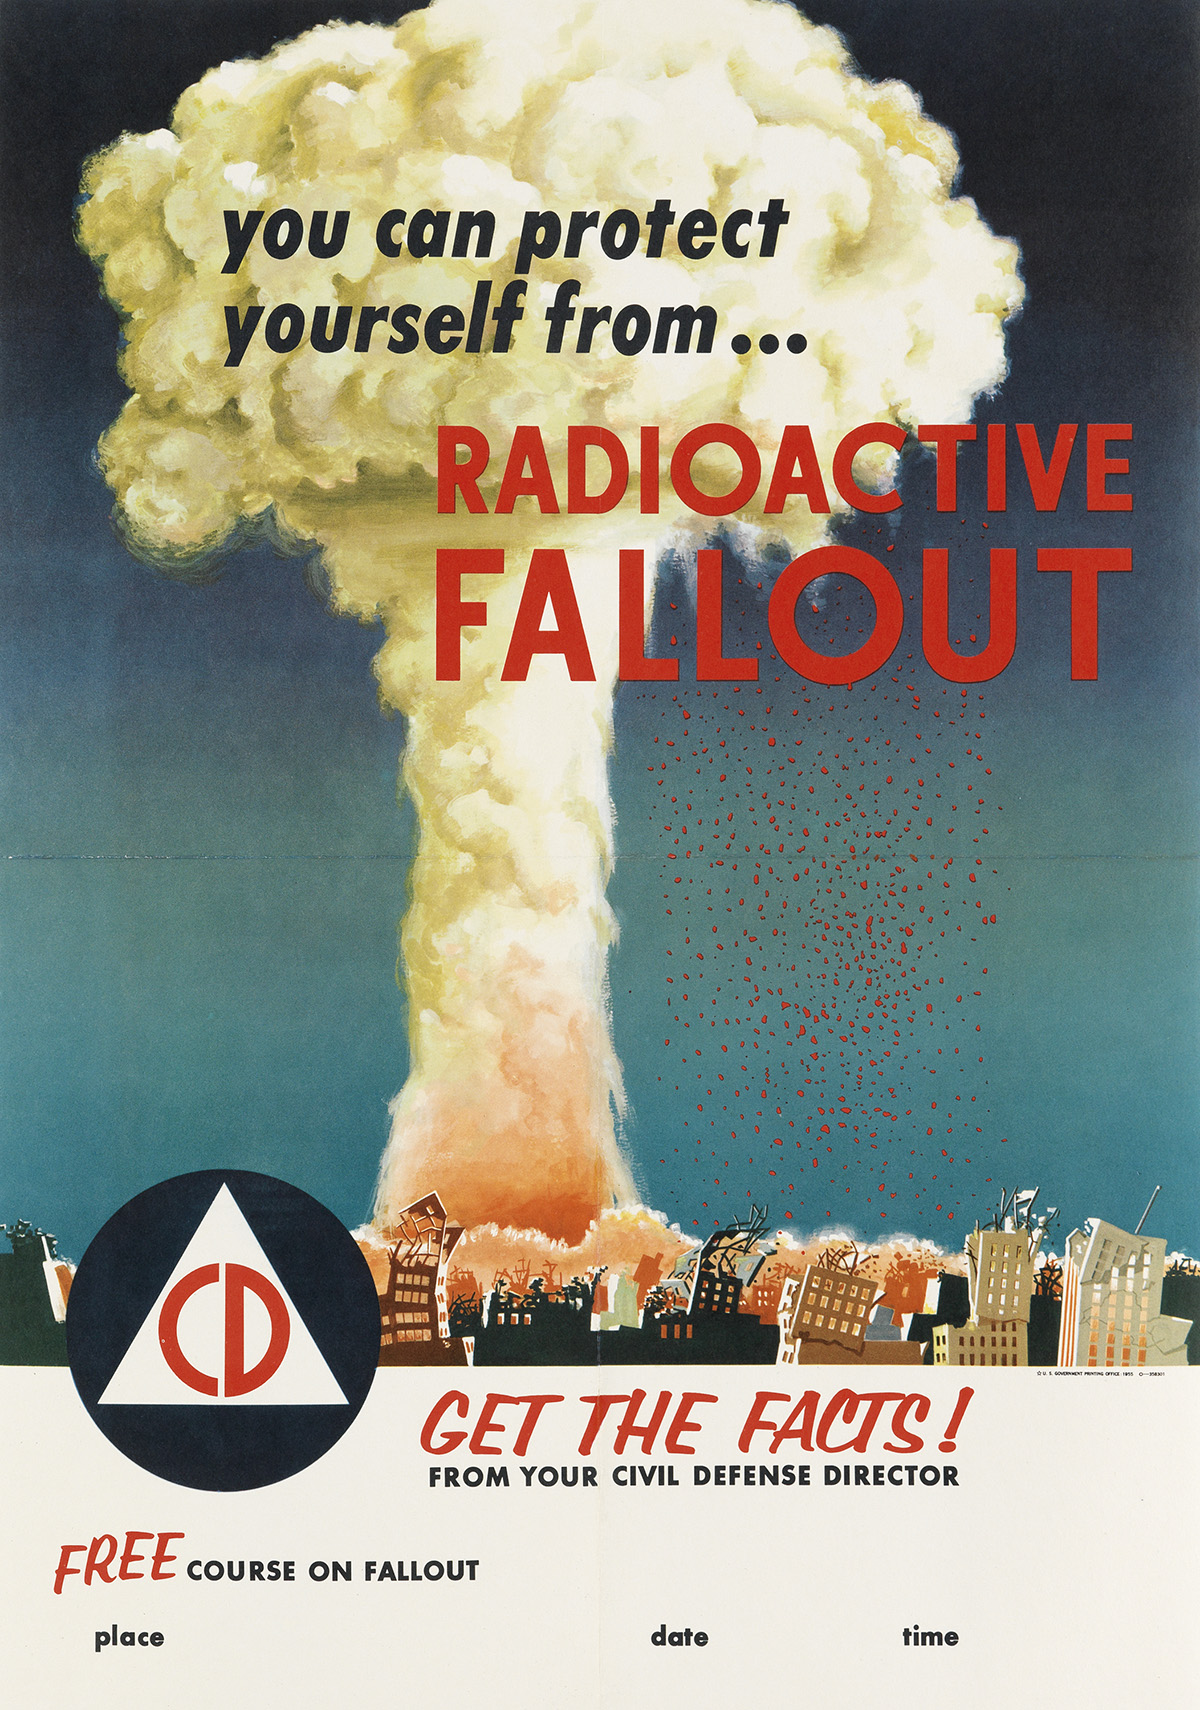 DESIGNER-UNKNOWN-YOU-CAN-PROTECT-YOURSELF-FROM----RADIOACTIV